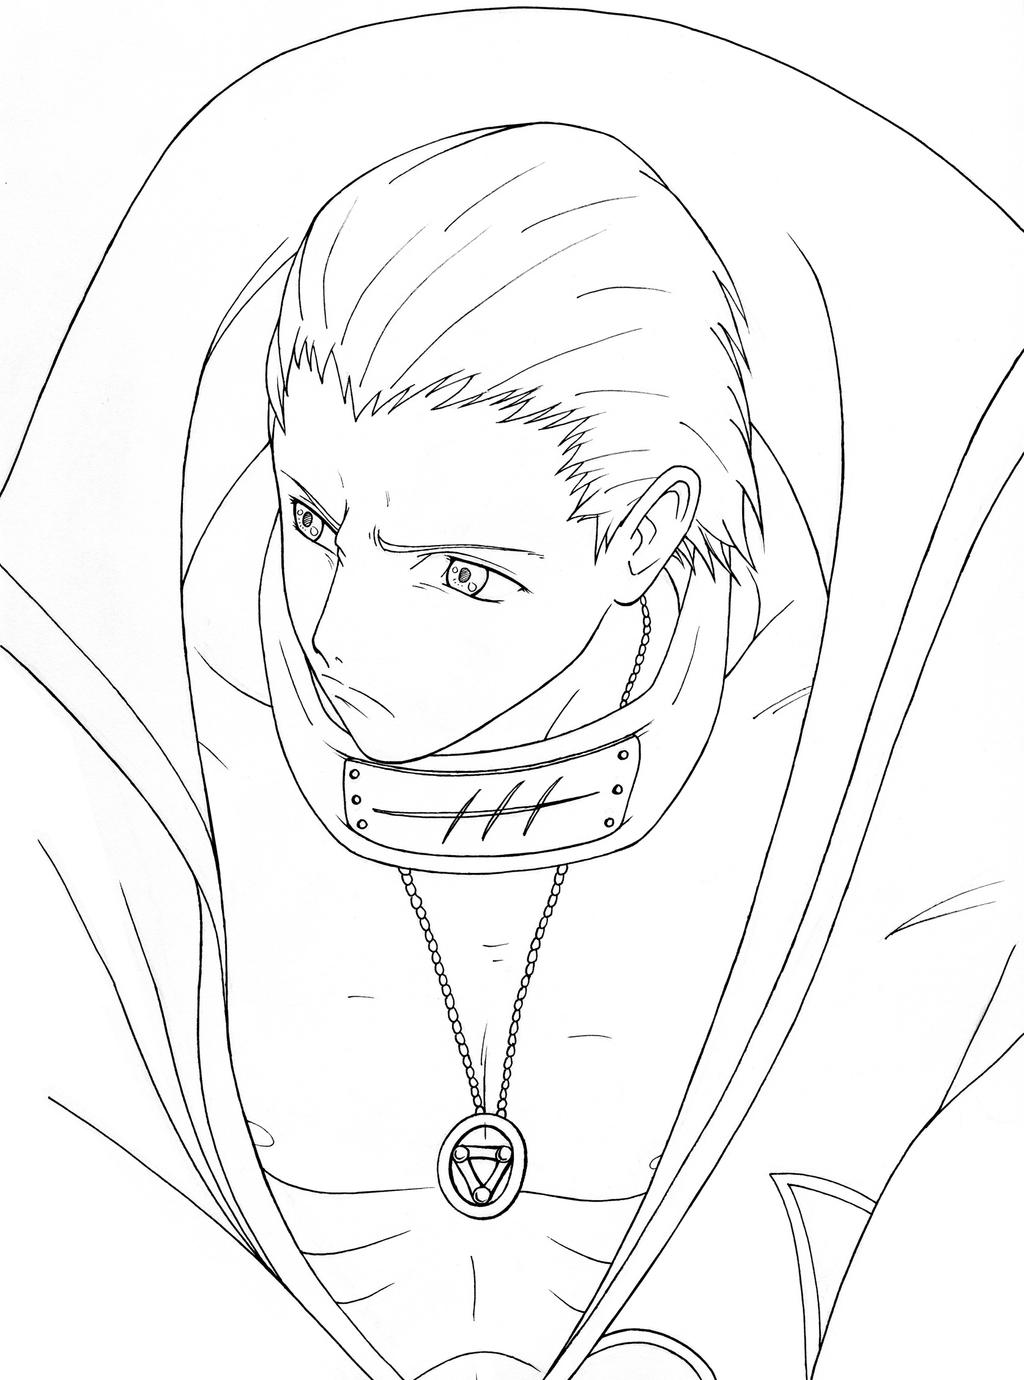 Naruto Coloring Pages Pdf : Akatsuki s hidan from naruto by kaendd on deviantart